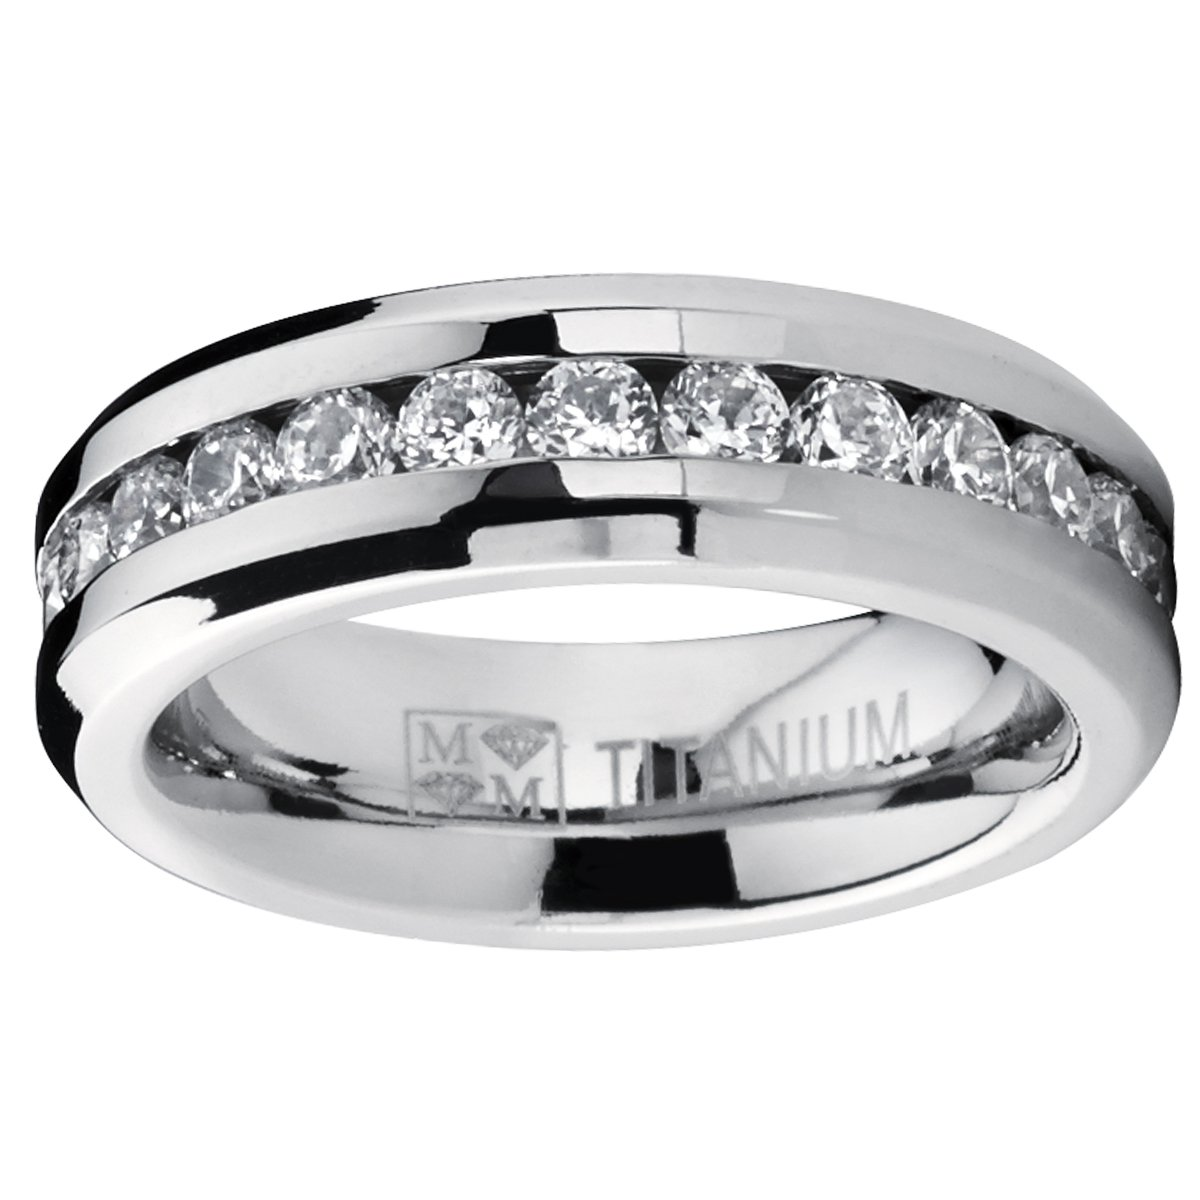 6MM Ladies Eternity Titanium Ring Cubic Zirconia Wedding Band with CZ size 7.5 by Metal Masters Co. (Image #1)